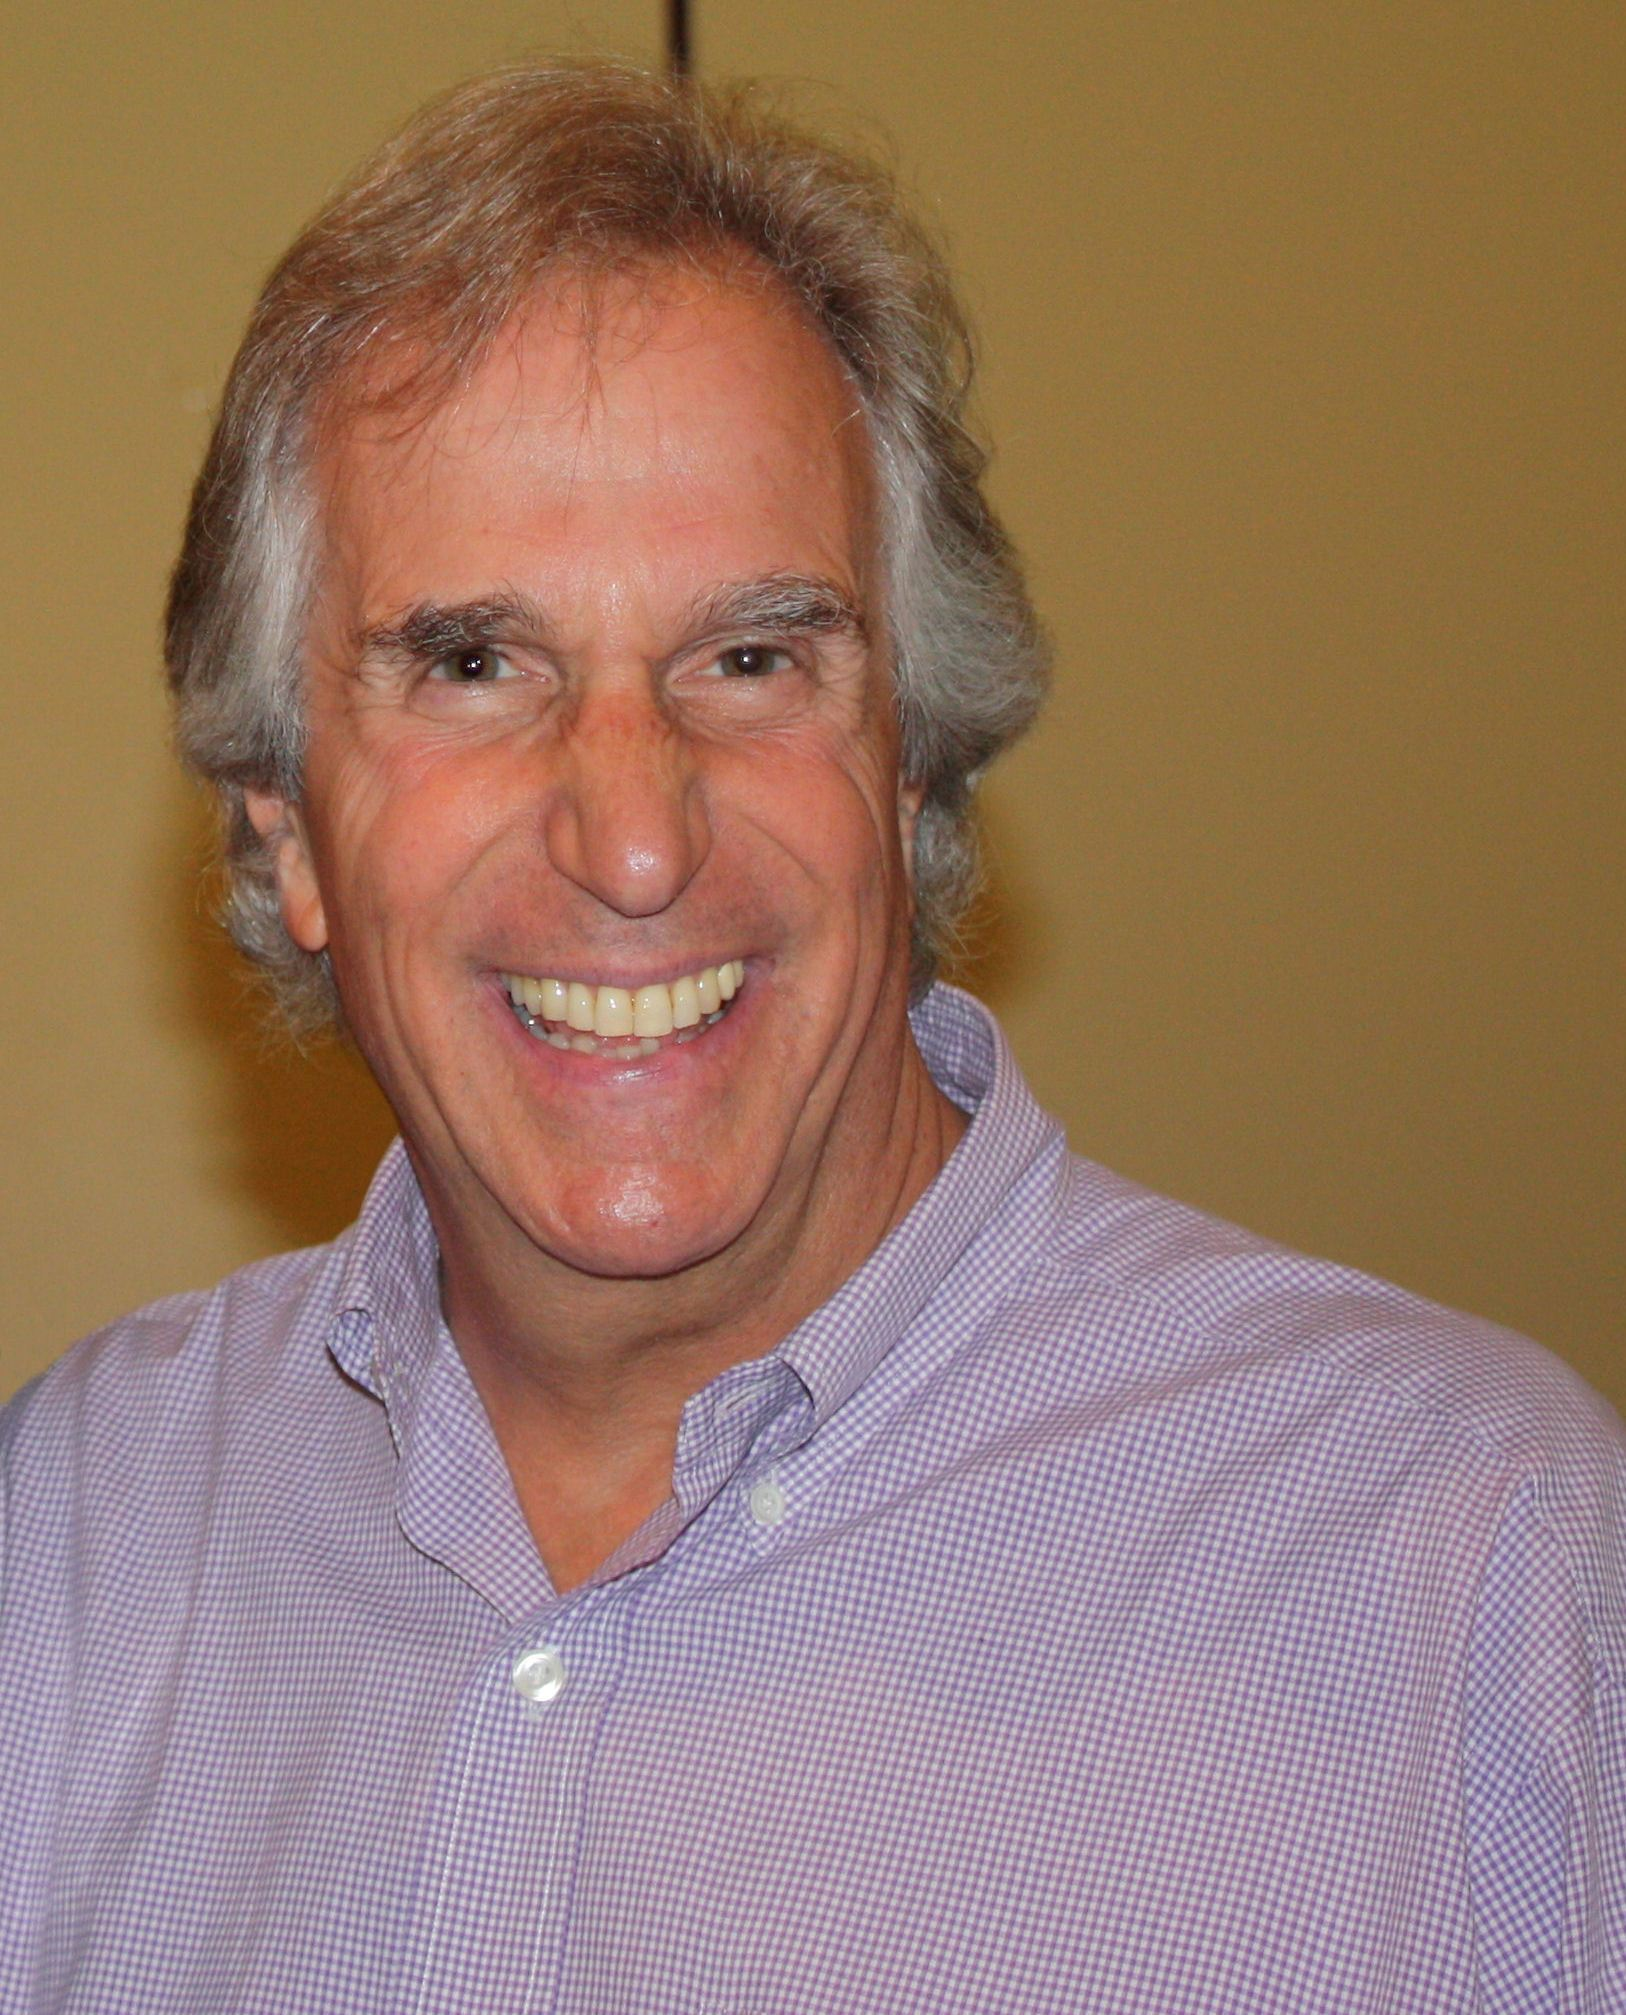 Henry Winkler at the Fan Expo Canada